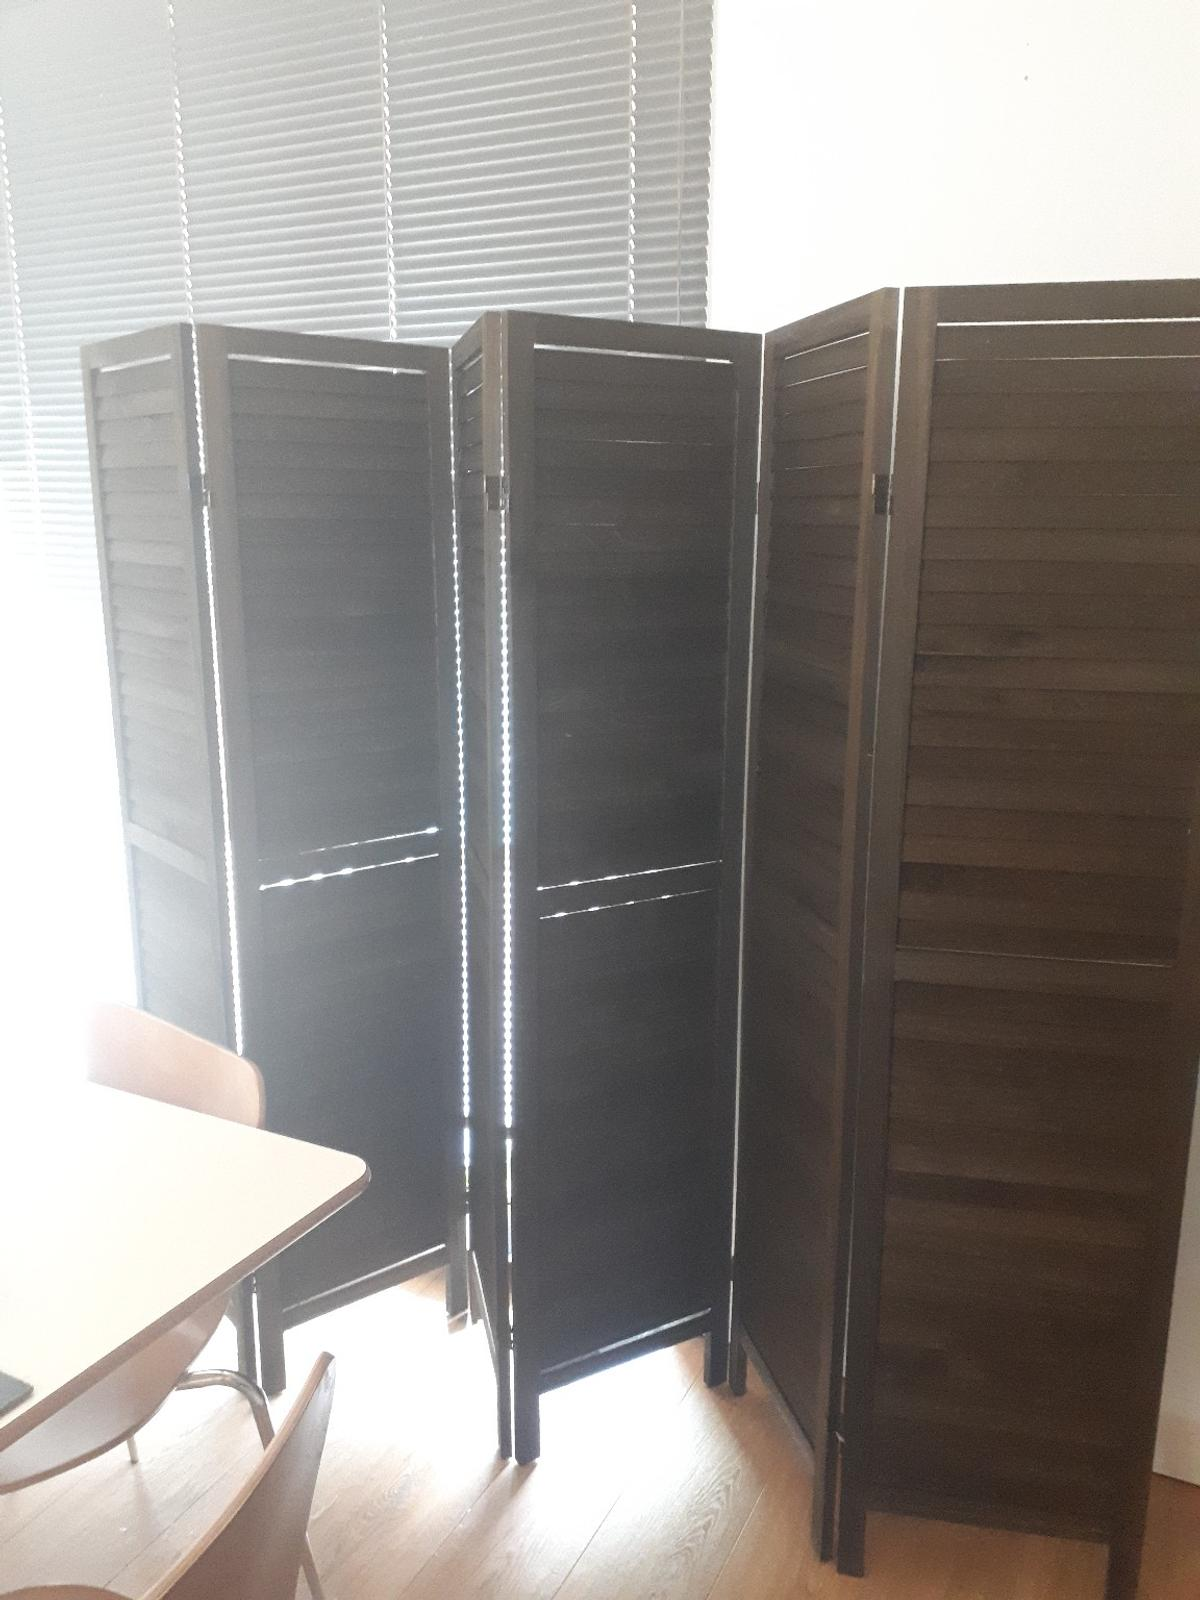 Miraculous Dark Wood Room Divider Screen 6 Panel In L2 Liverpool For Download Free Architecture Designs Crovemadebymaigaardcom